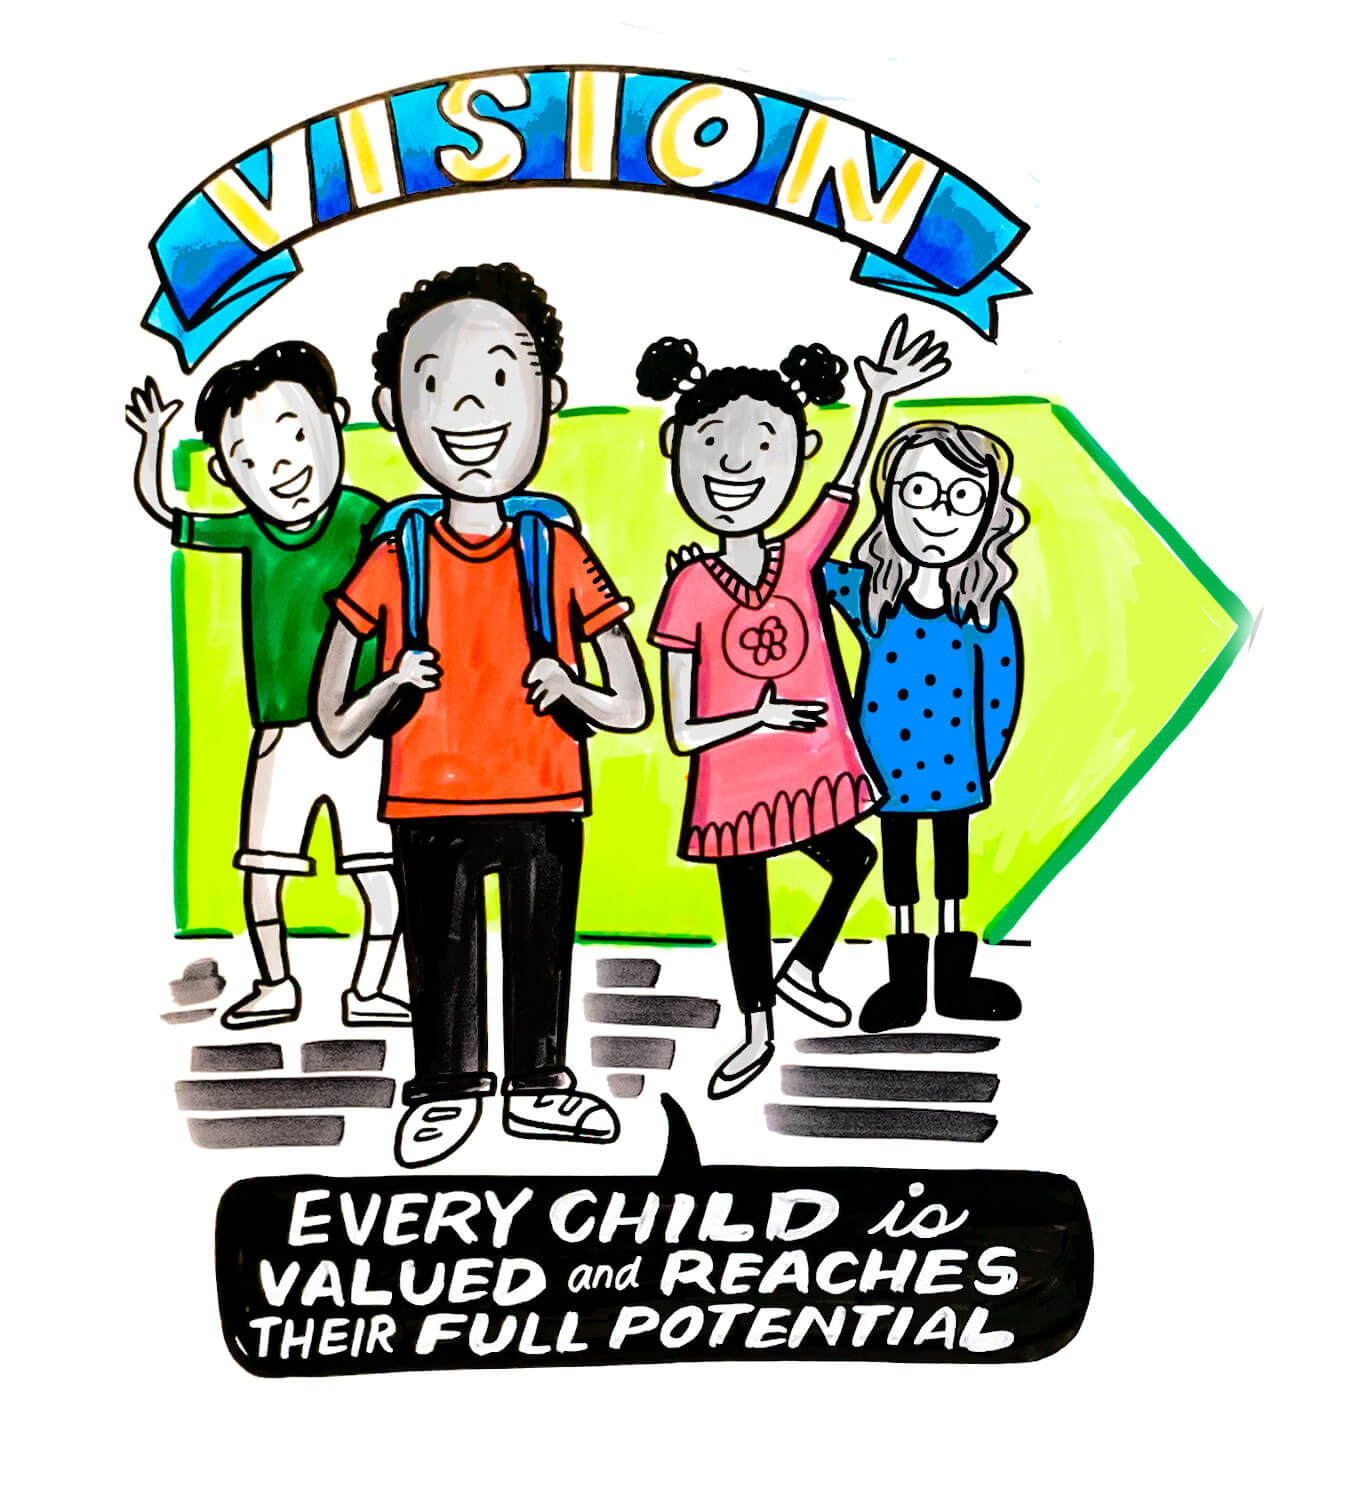 Our Vision - Every child is valued and reaches their full potential